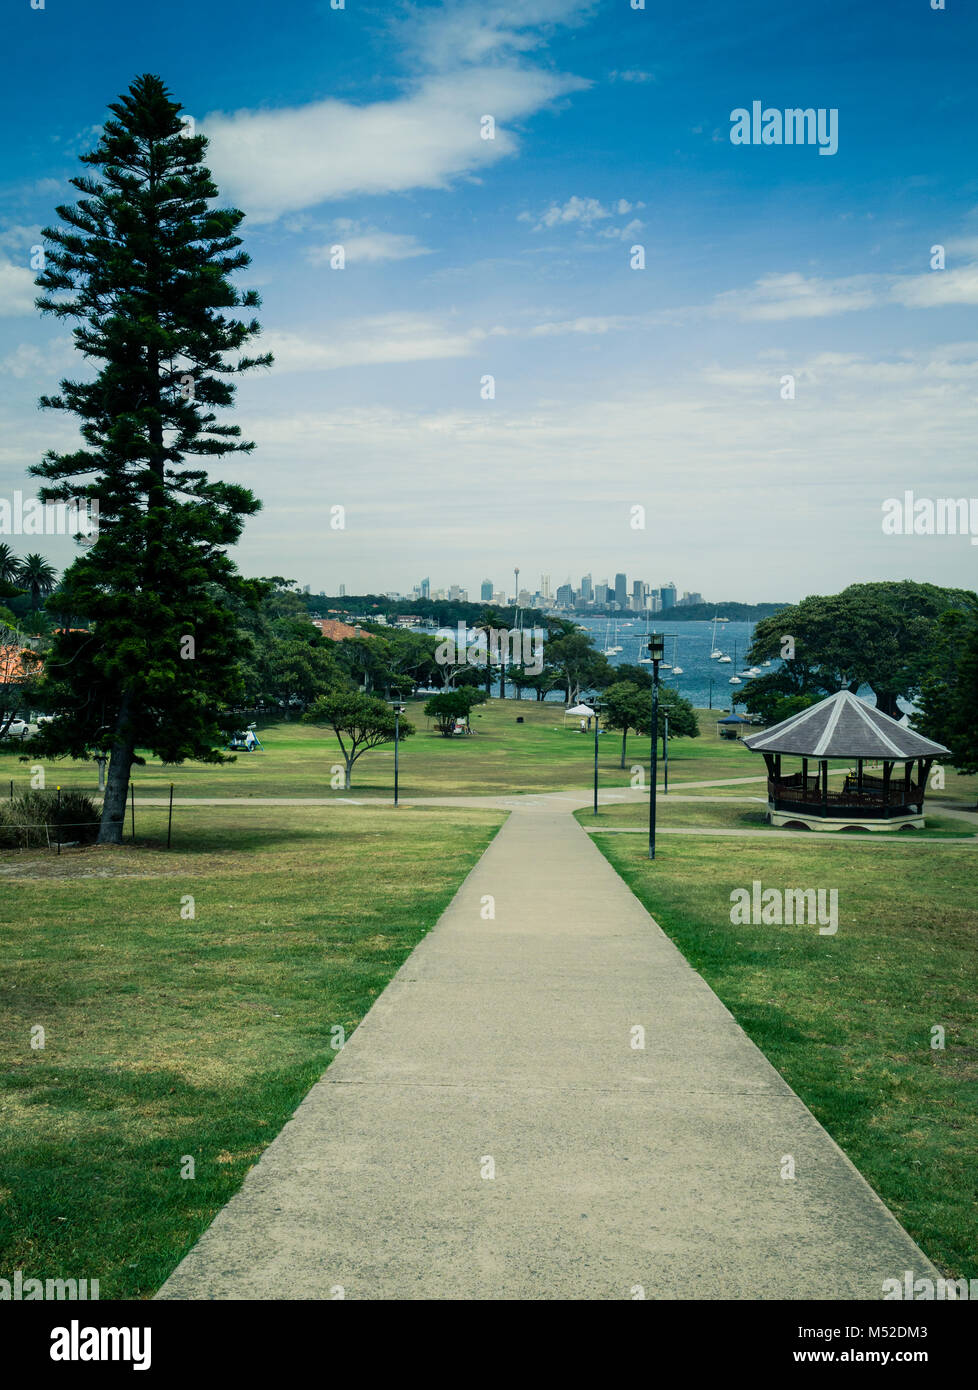 Robertson Park, Watsons Bay, Sydney Harbour, New South Wales, Australia - green tint applied - Stock Image